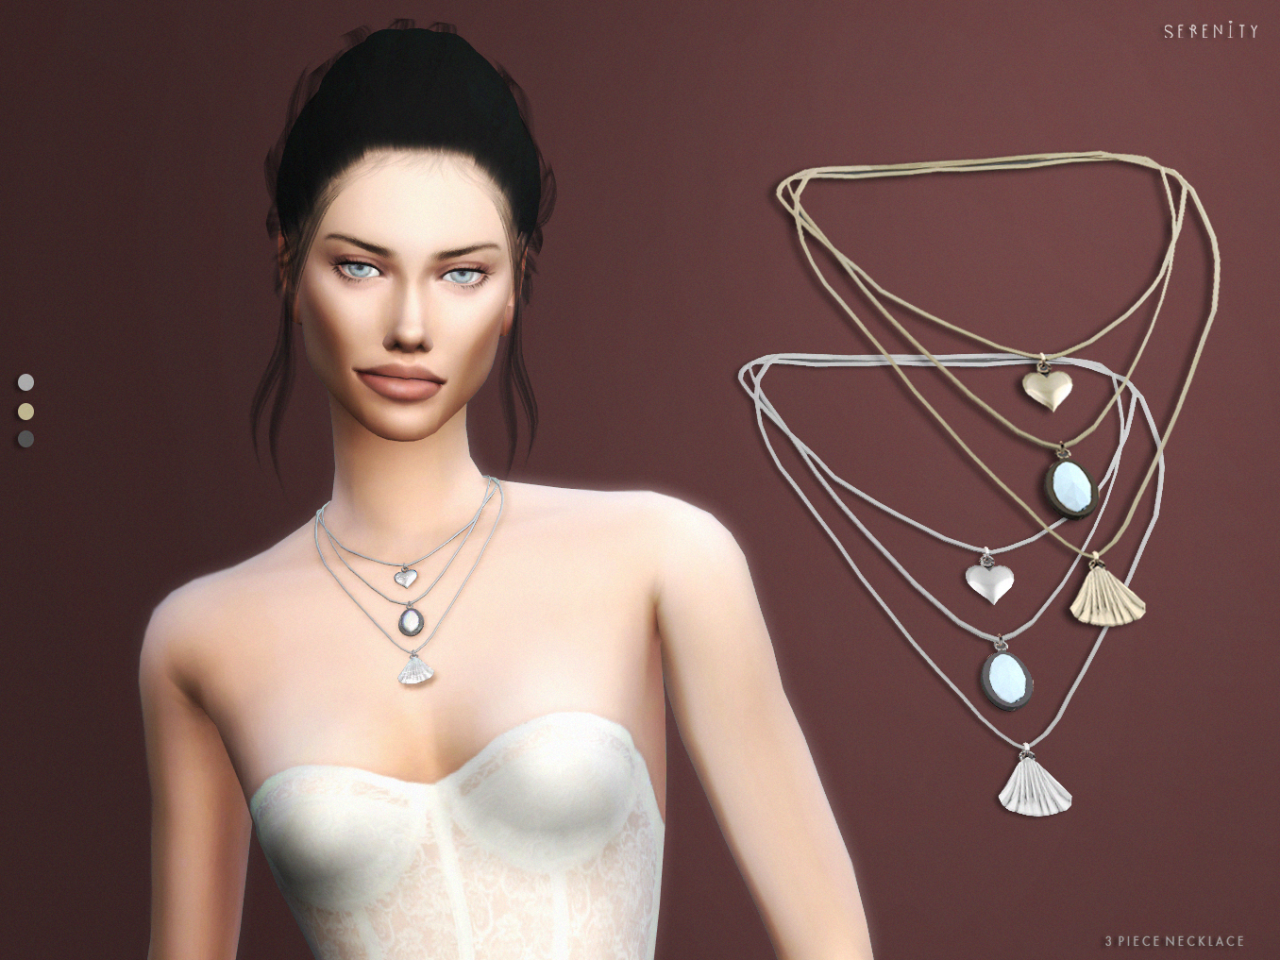 3 Piece Necklace by SerenityCC